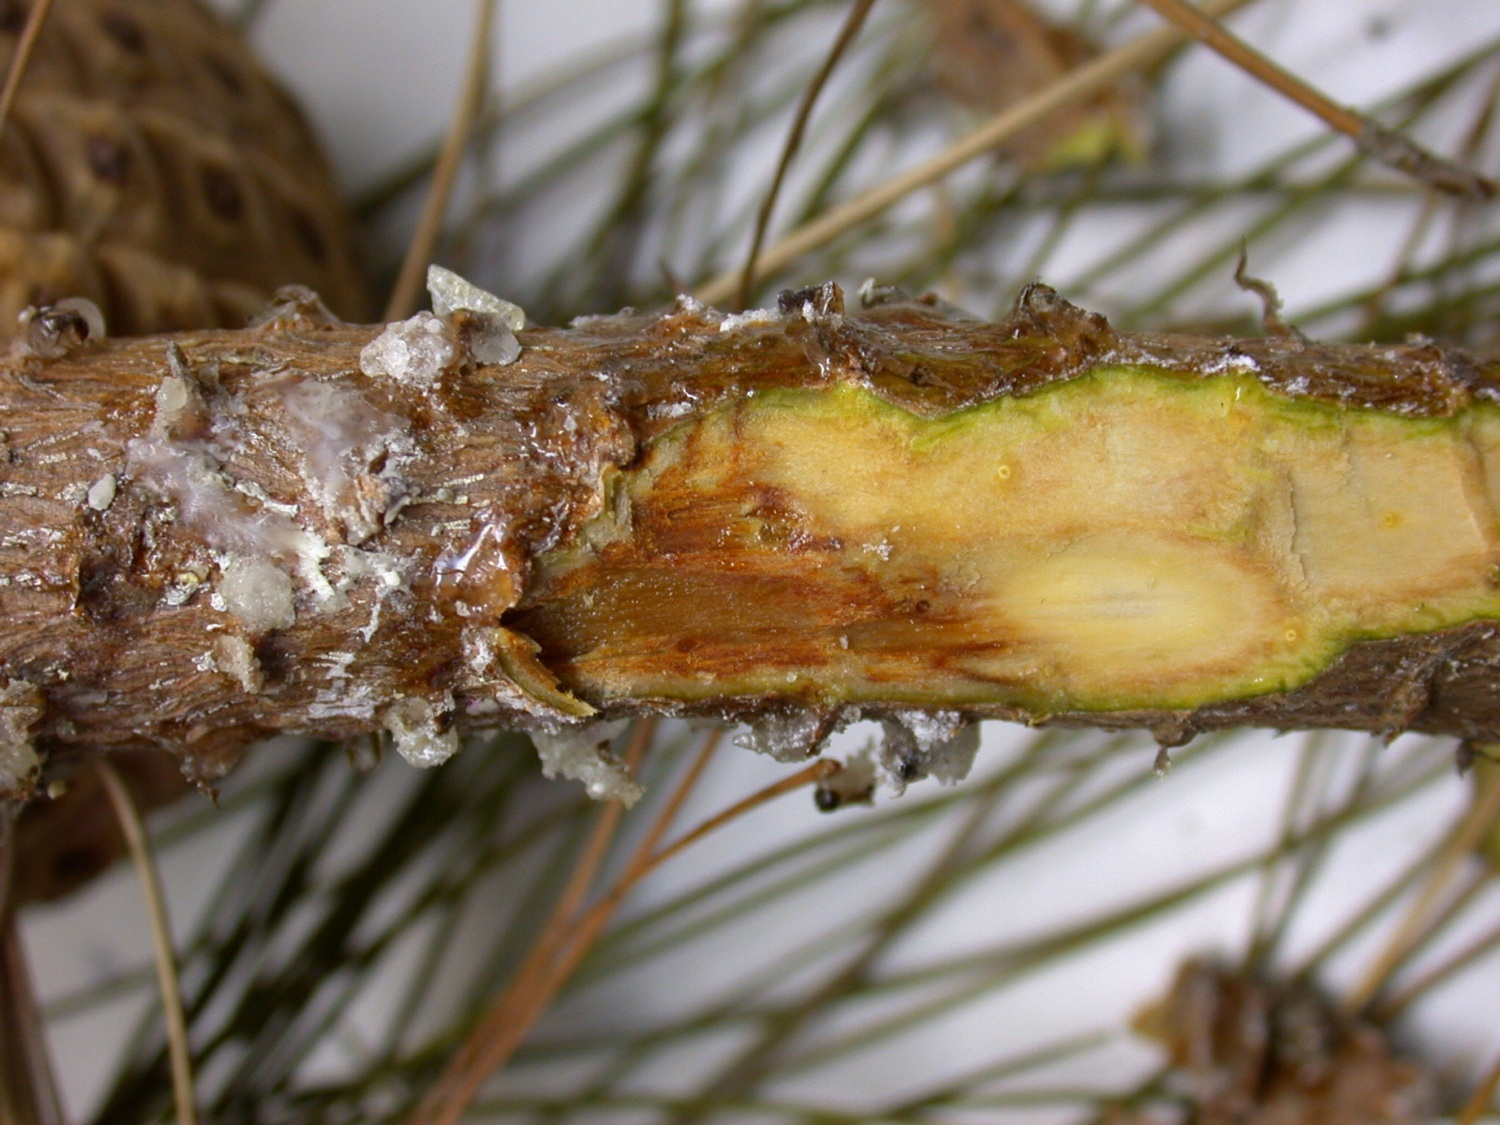 example of pitch pine canker